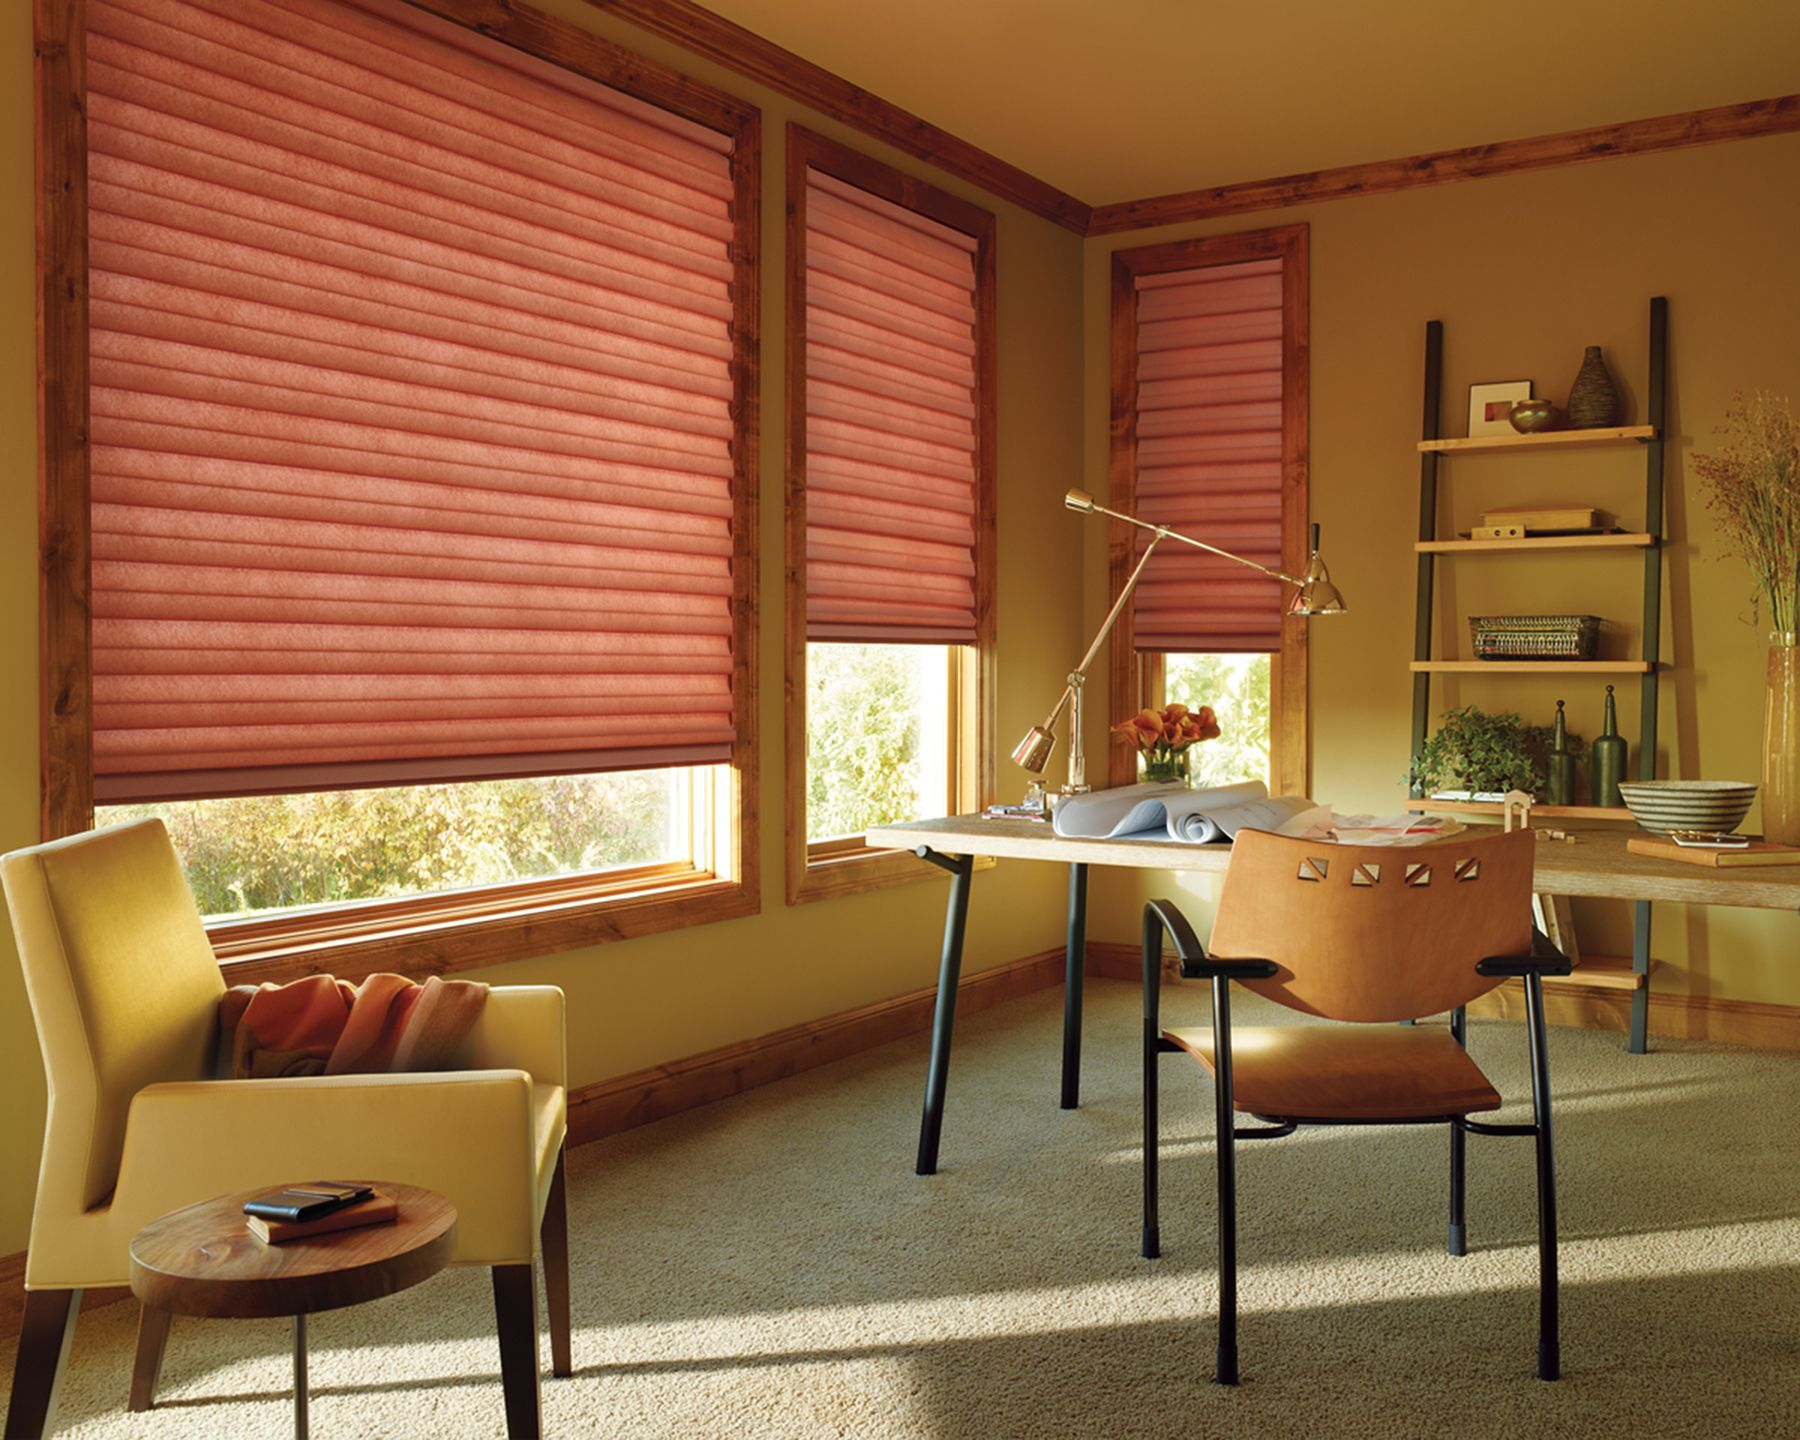 The Beauty Of Solera Soft Shades Adds Softness And Convenience